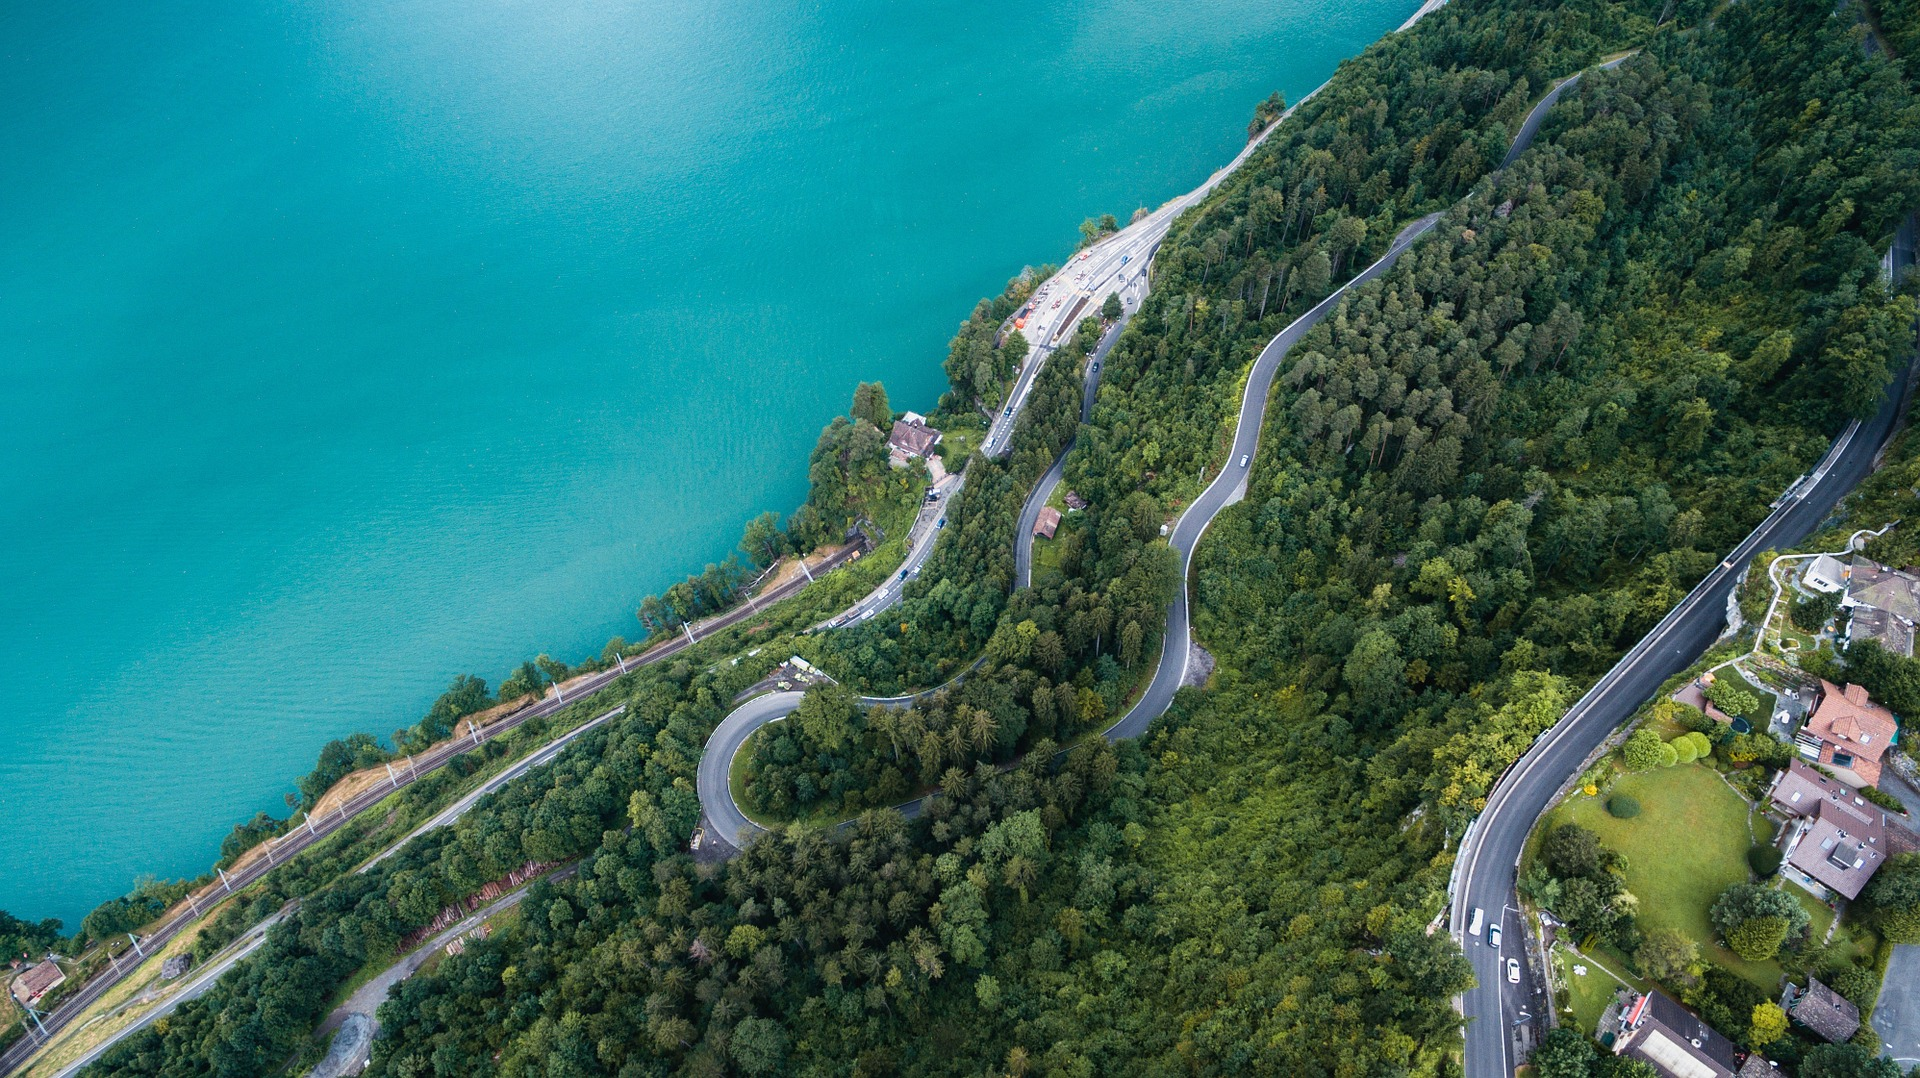 Drone footage of winding road next to sea